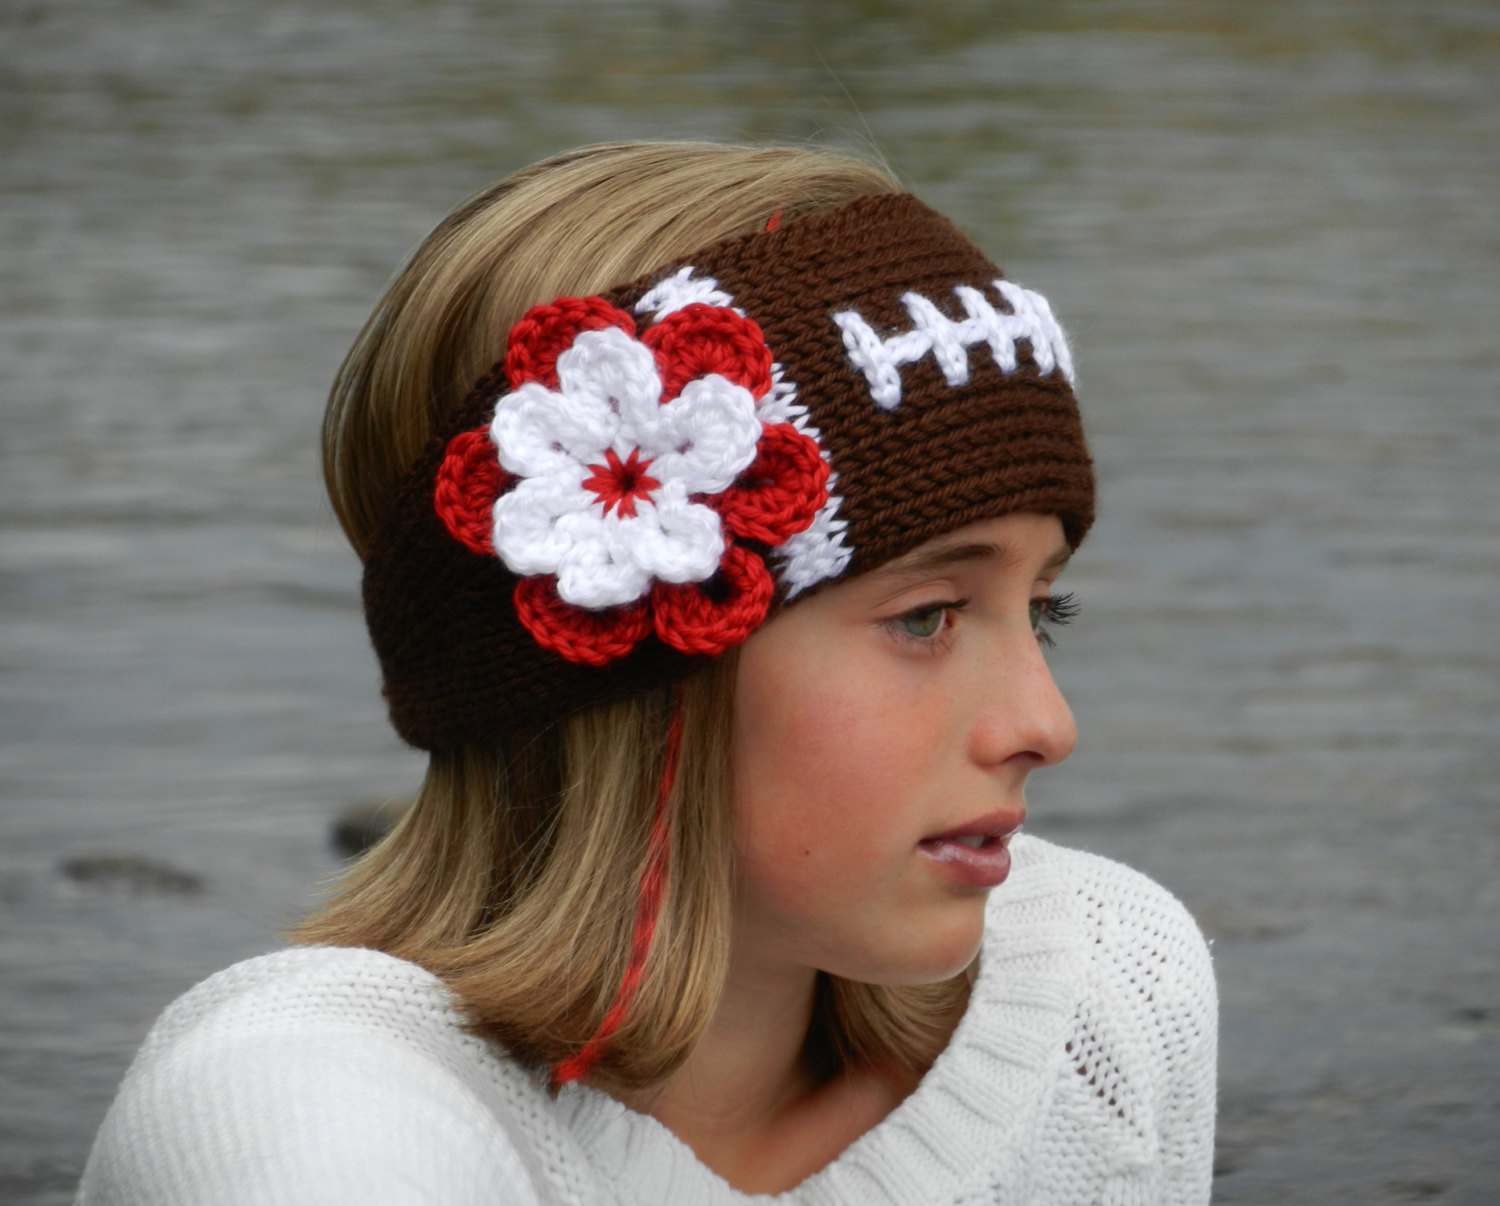 Knit Headband Pattern With Flower Tunisian Knit Look Crochet Football Headband Earwarmer Pattern With Flower Tunisian Crochet Football Headband Pattern Instant Download